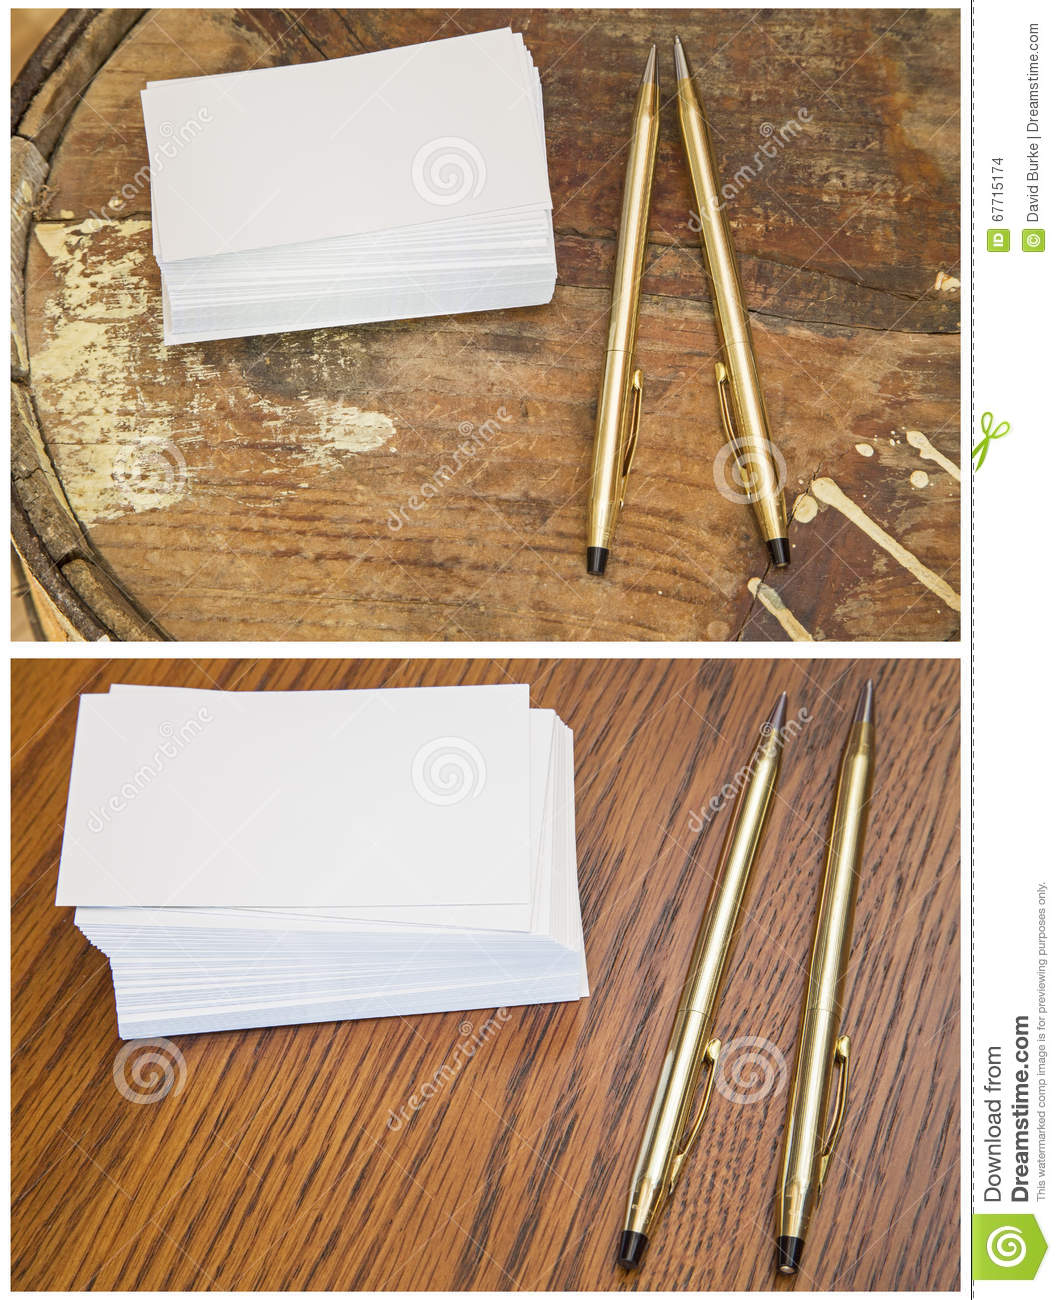 Collage blank business cards writing pen pencil stock photo image the blank stack of business card collage with writing pencil and pen on rustic and smooth finished wood pine and oak surface is white collection set group colourmoves